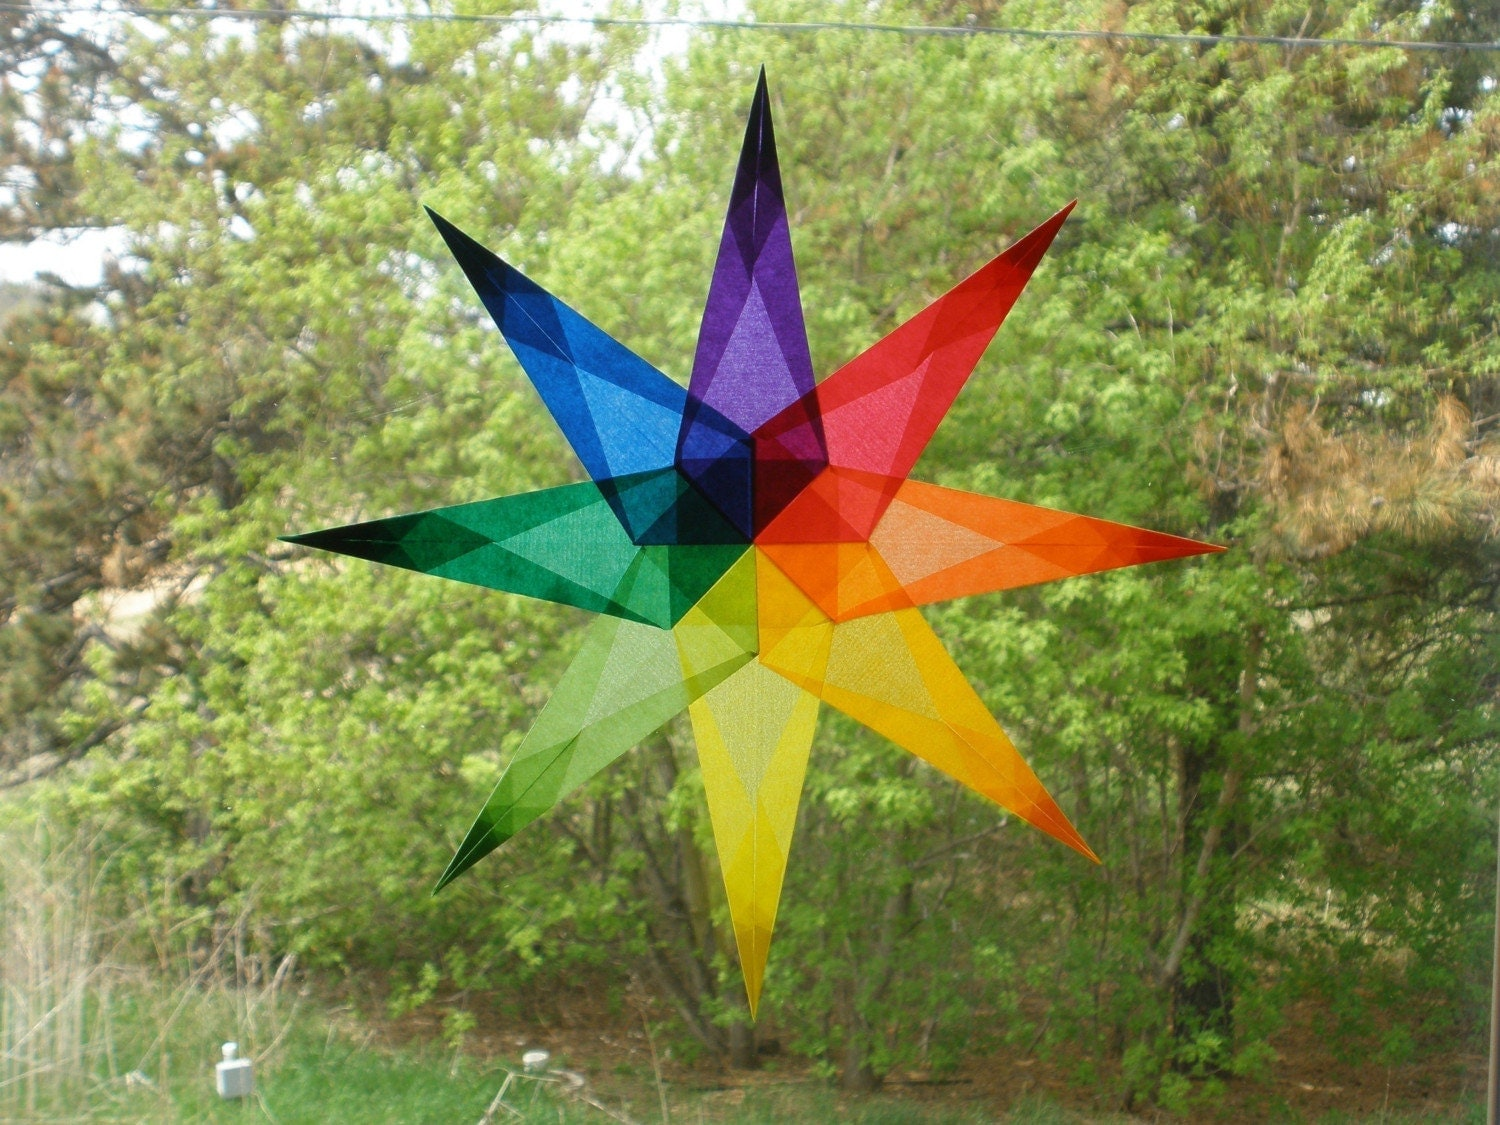 Pointed Waldorf Rainbow Window Star Multi-Color Kaleidoscope Intricate Stained Glass Effect Birthday Wedding Blessingway Anniversary Baby Shower Gift Color Wheel Inspiring Waldorf Montessori Homeschool Art Education Etsymom SHE Team UWIB FFEST